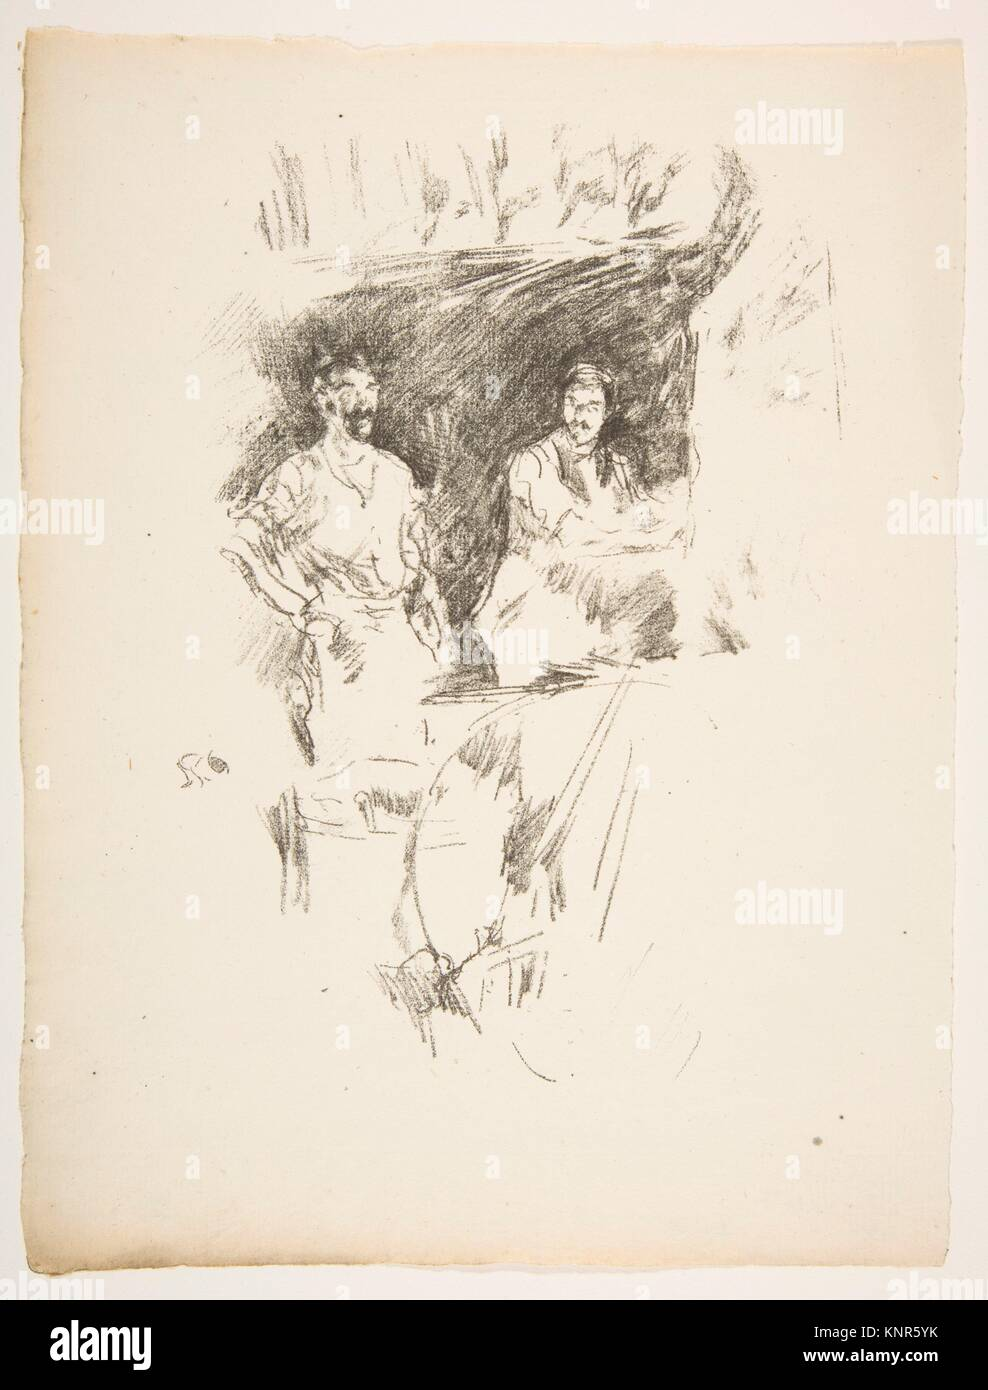 The Brothers. Artist: James McNeill Whistler (American, Lowell, Massachusetts 1834-1903 London); Date: 1895-96; - Stock Image